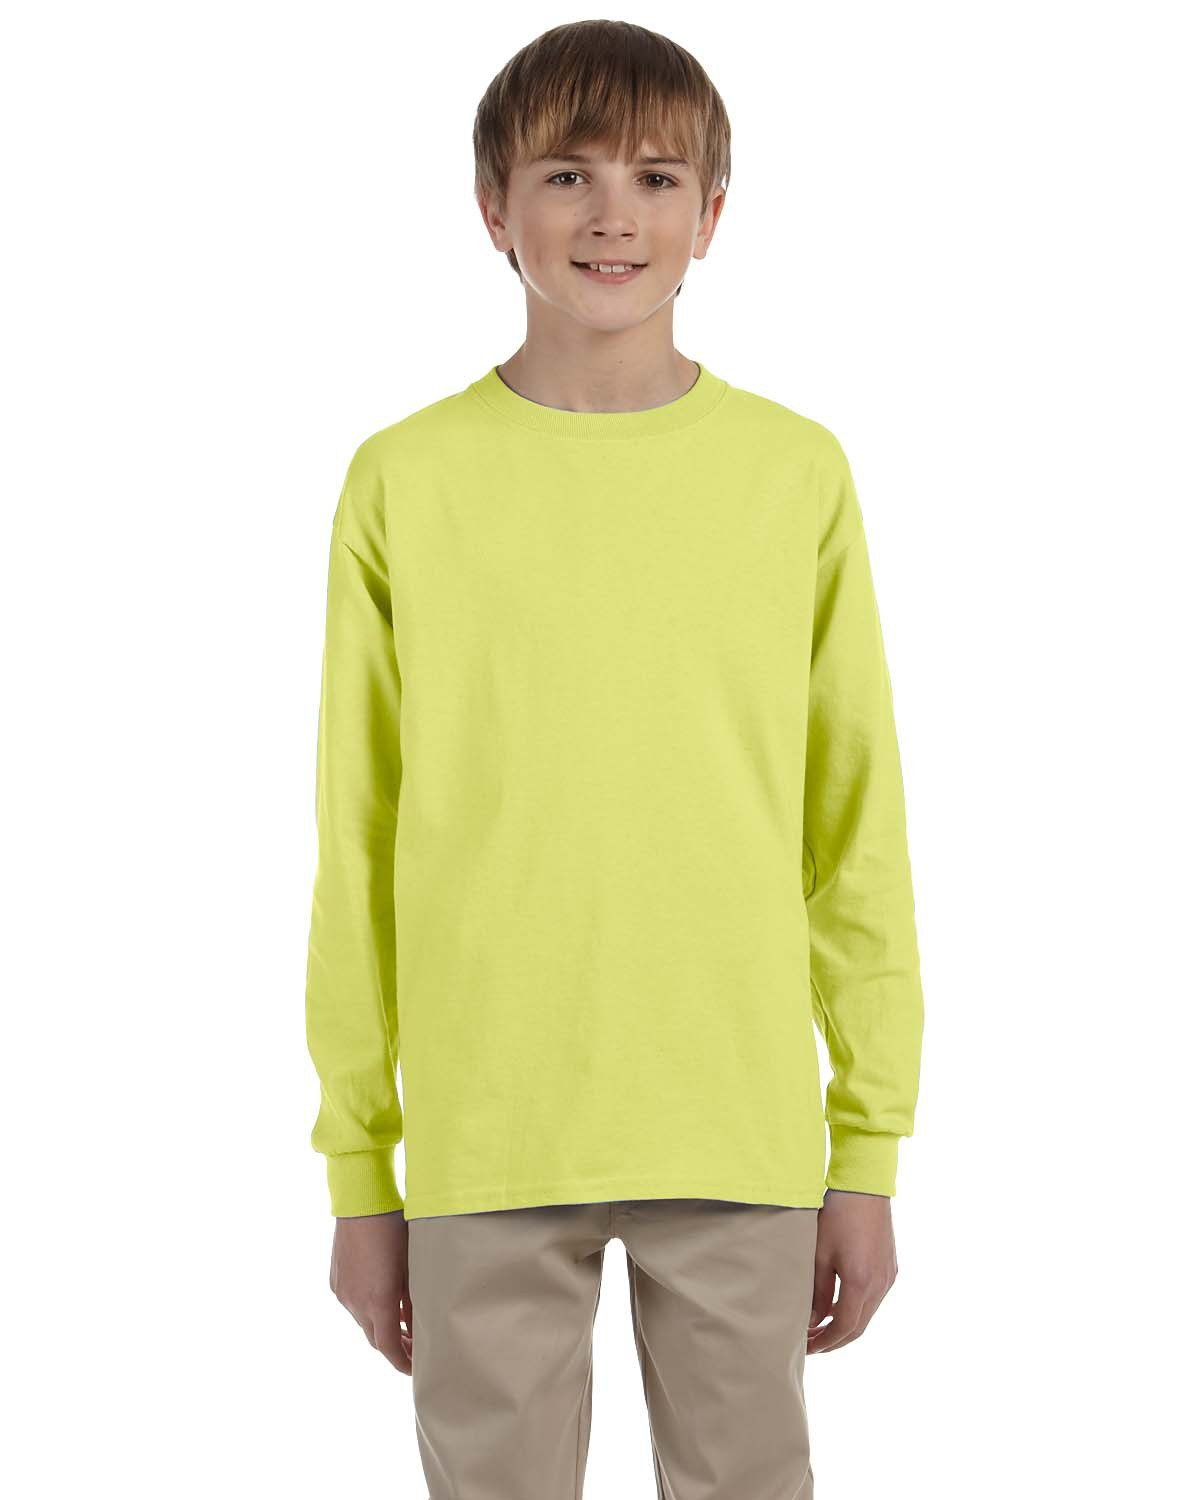 Jerzees Youth DRI-POWER® ACTIVE Long-Sleeve T-Shirt SAFETY GREEN